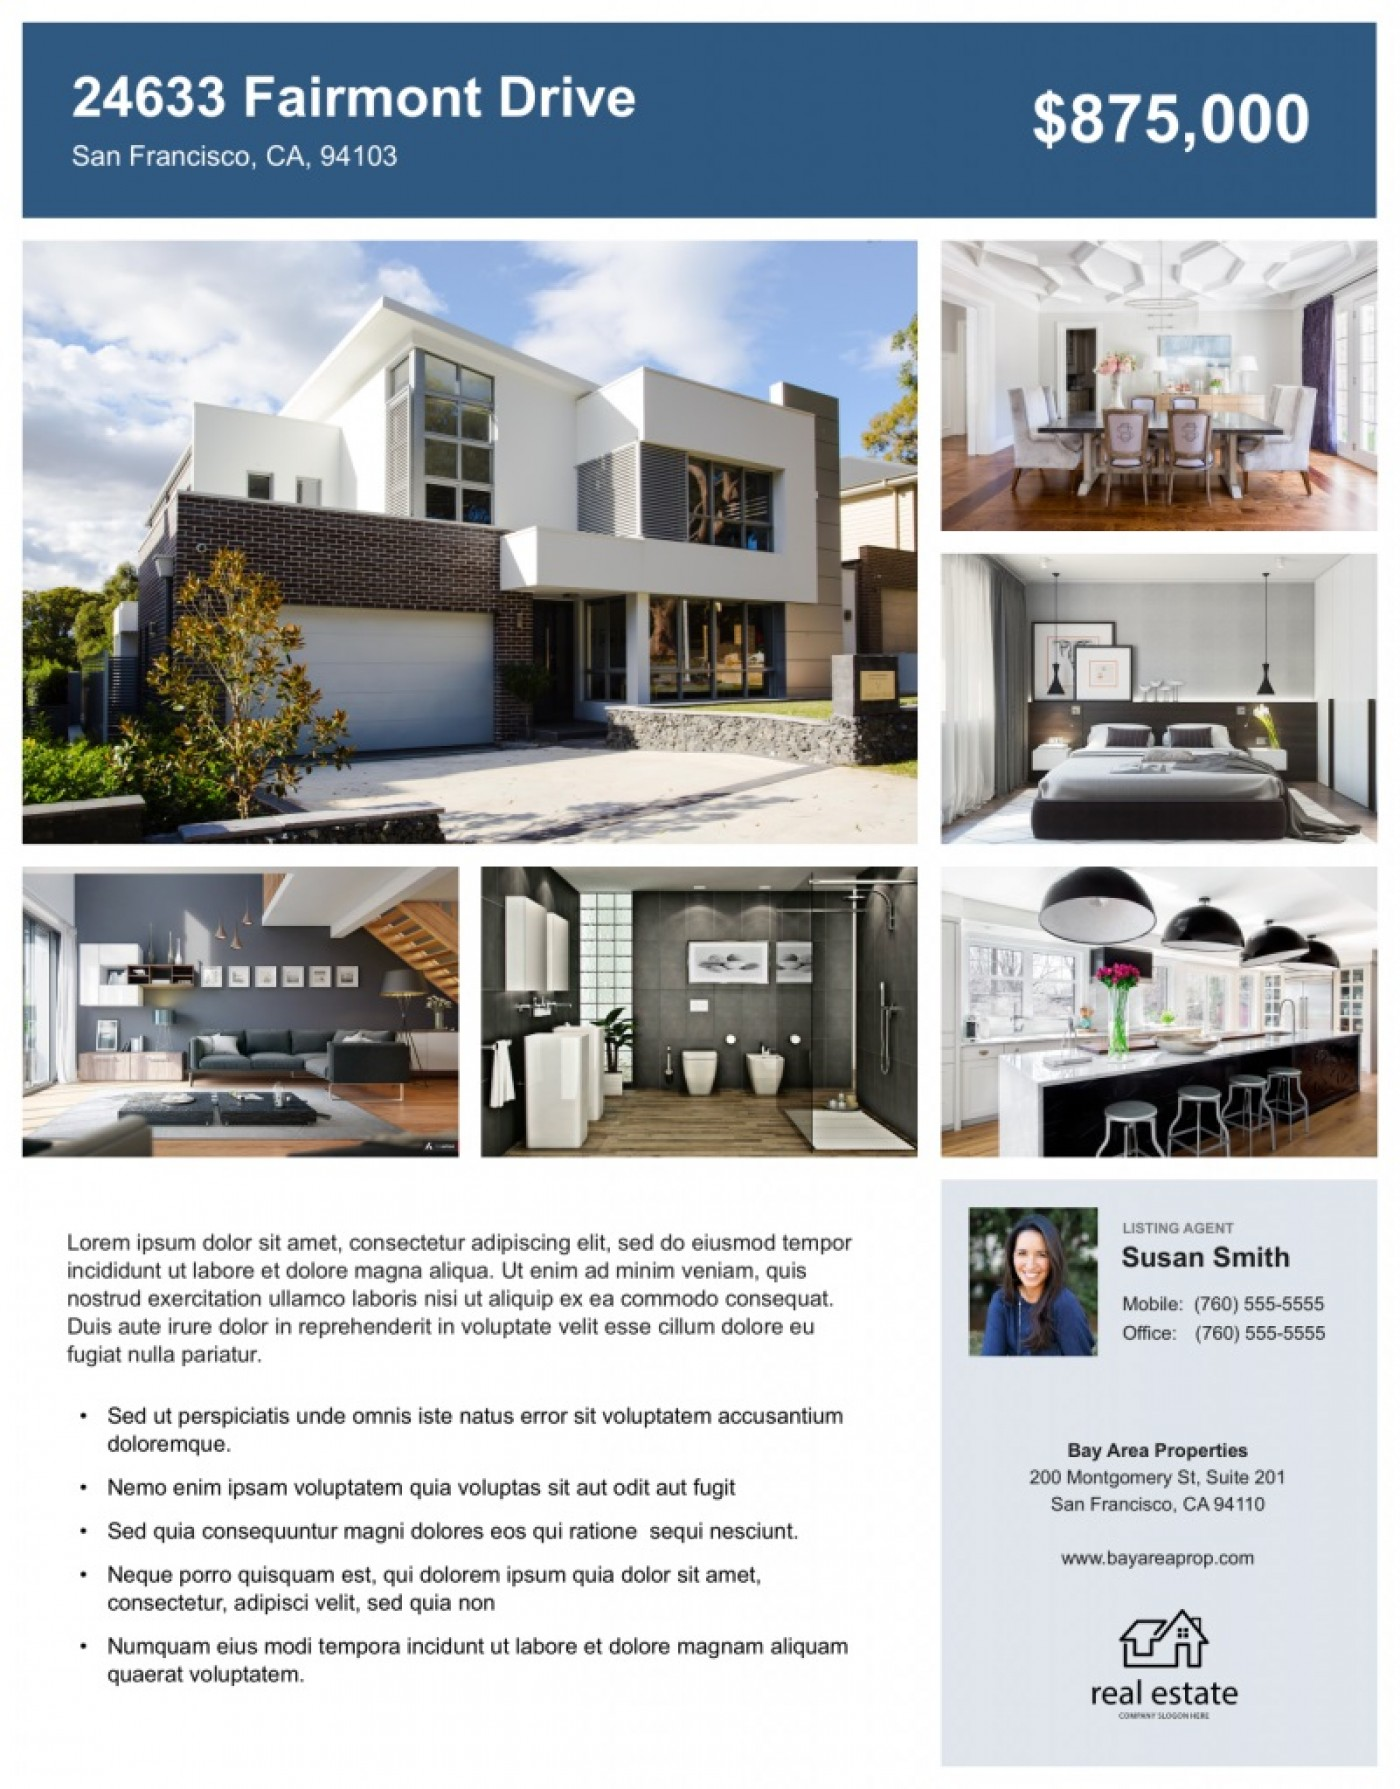 006 Unique Real Estate Advertising Template Example  Facebook Ad Craigslist1400